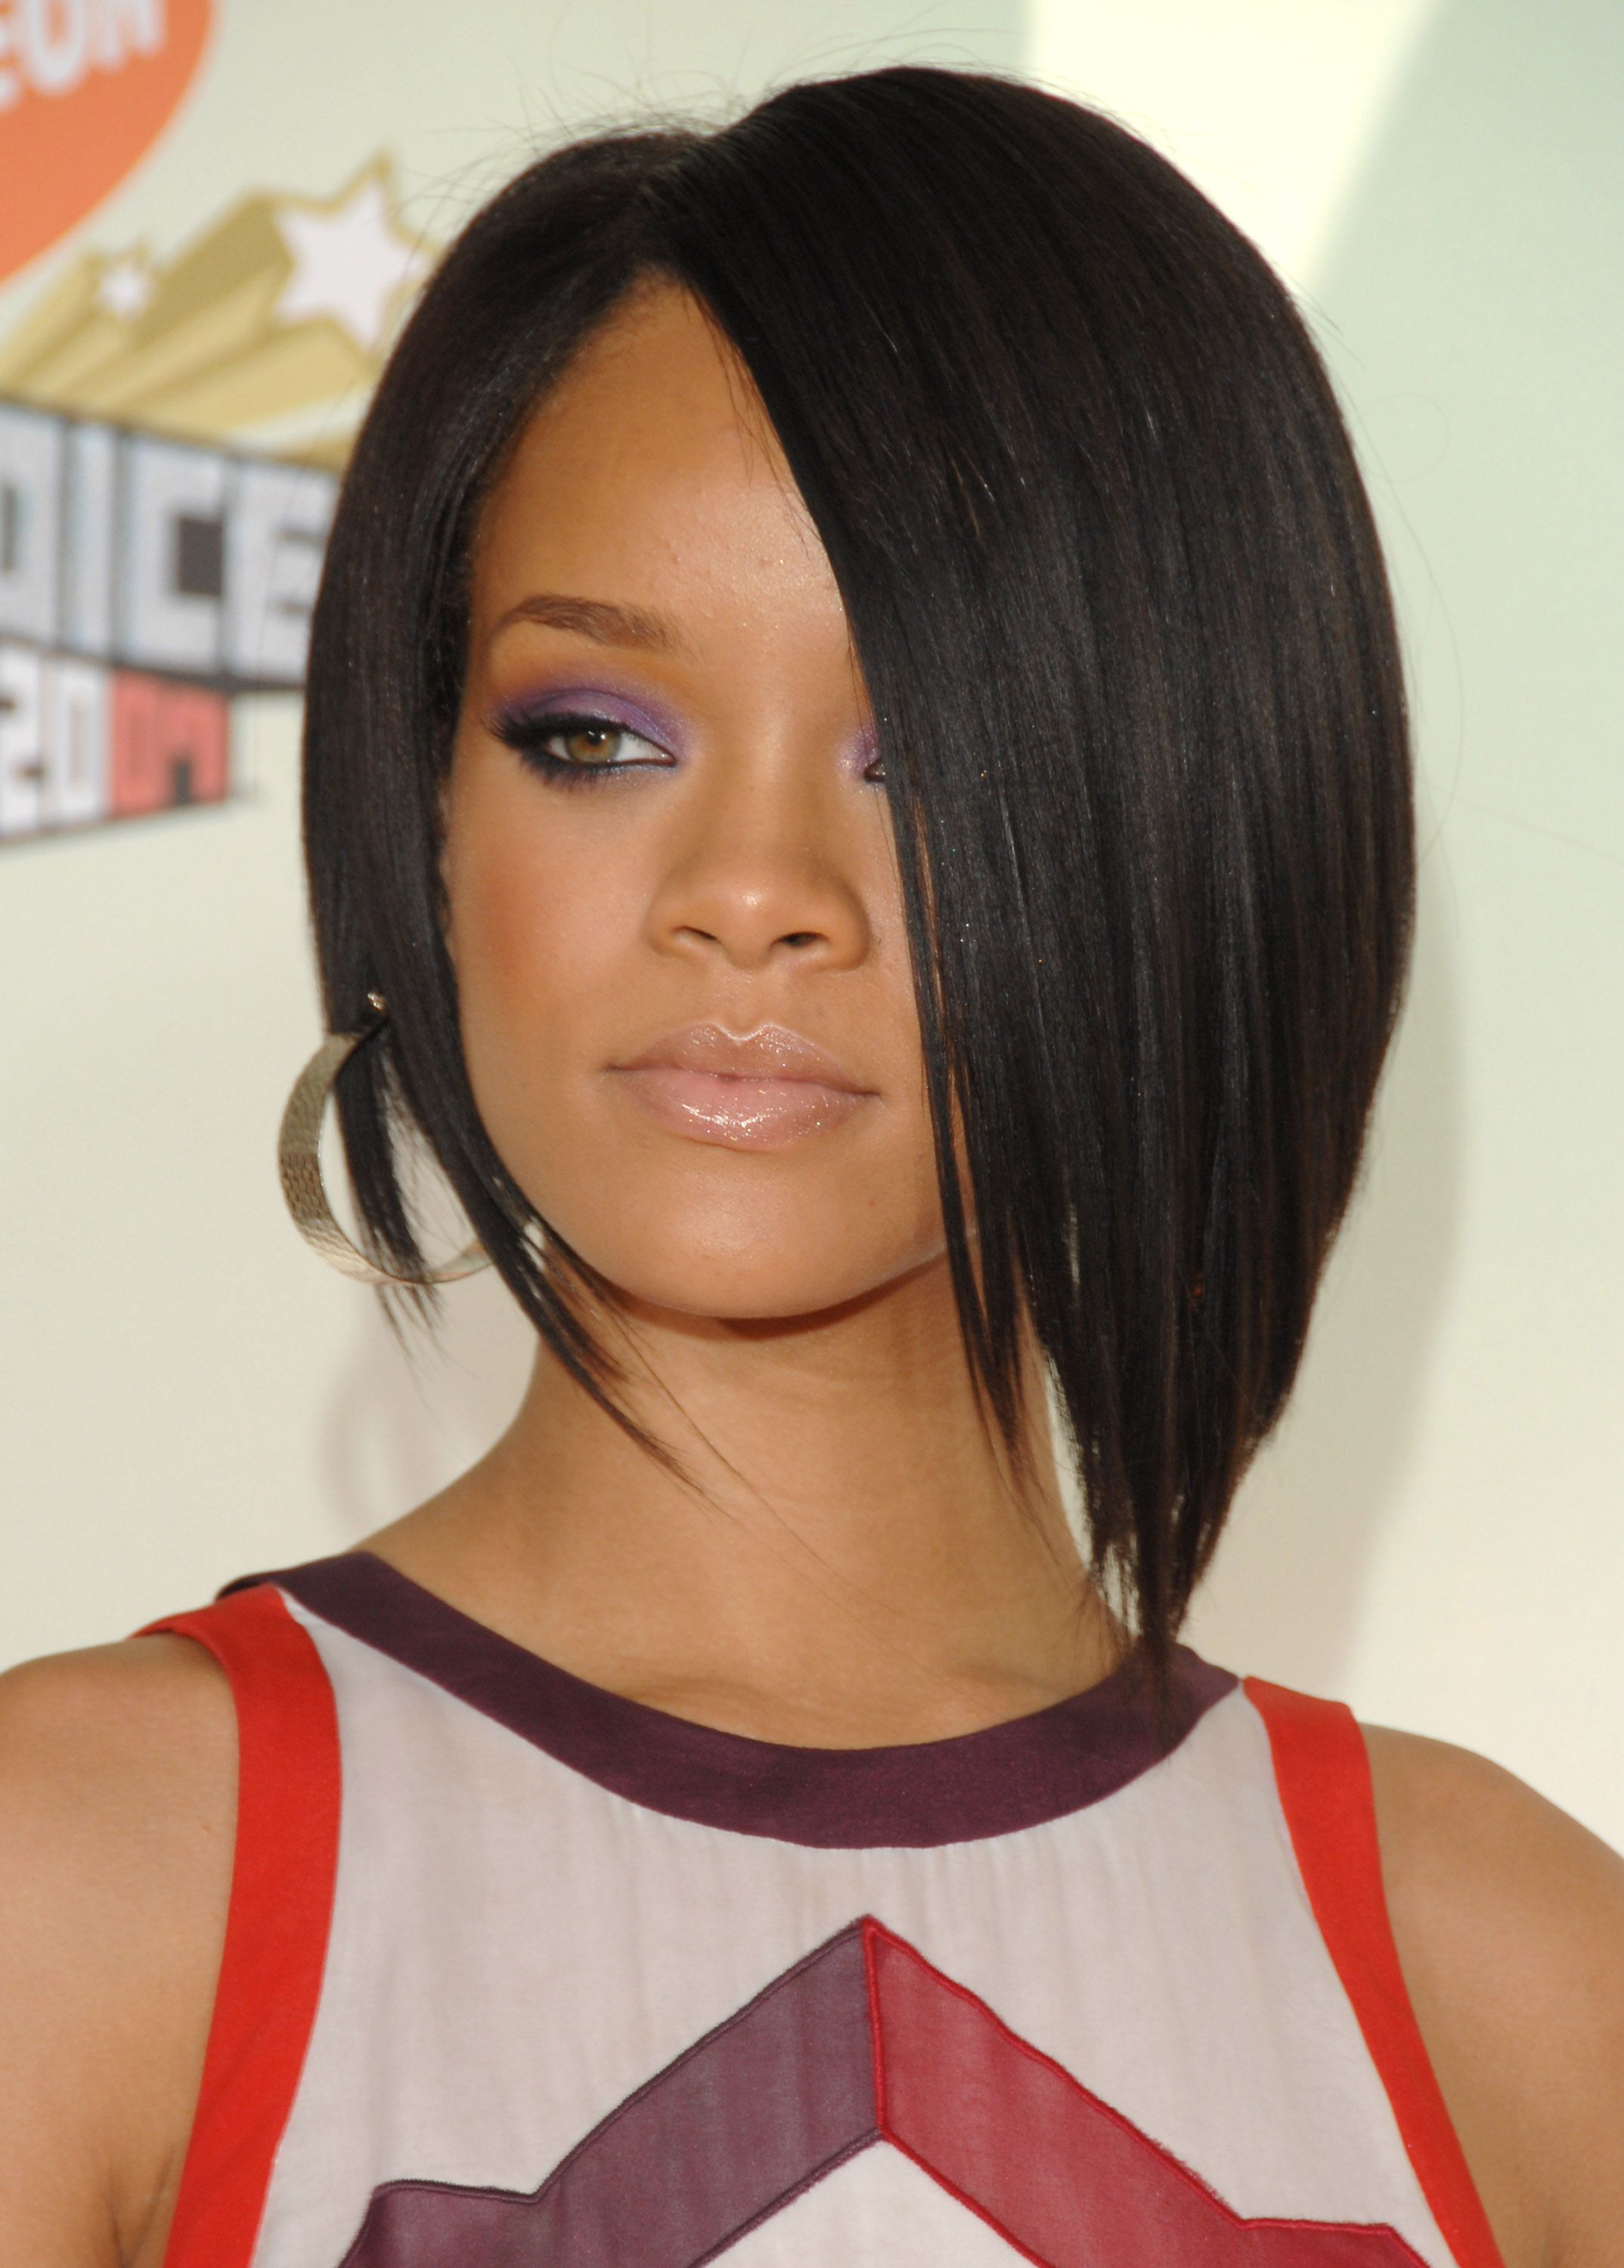 50 short hairstyle ideas for black women | angled bobs, bobs and